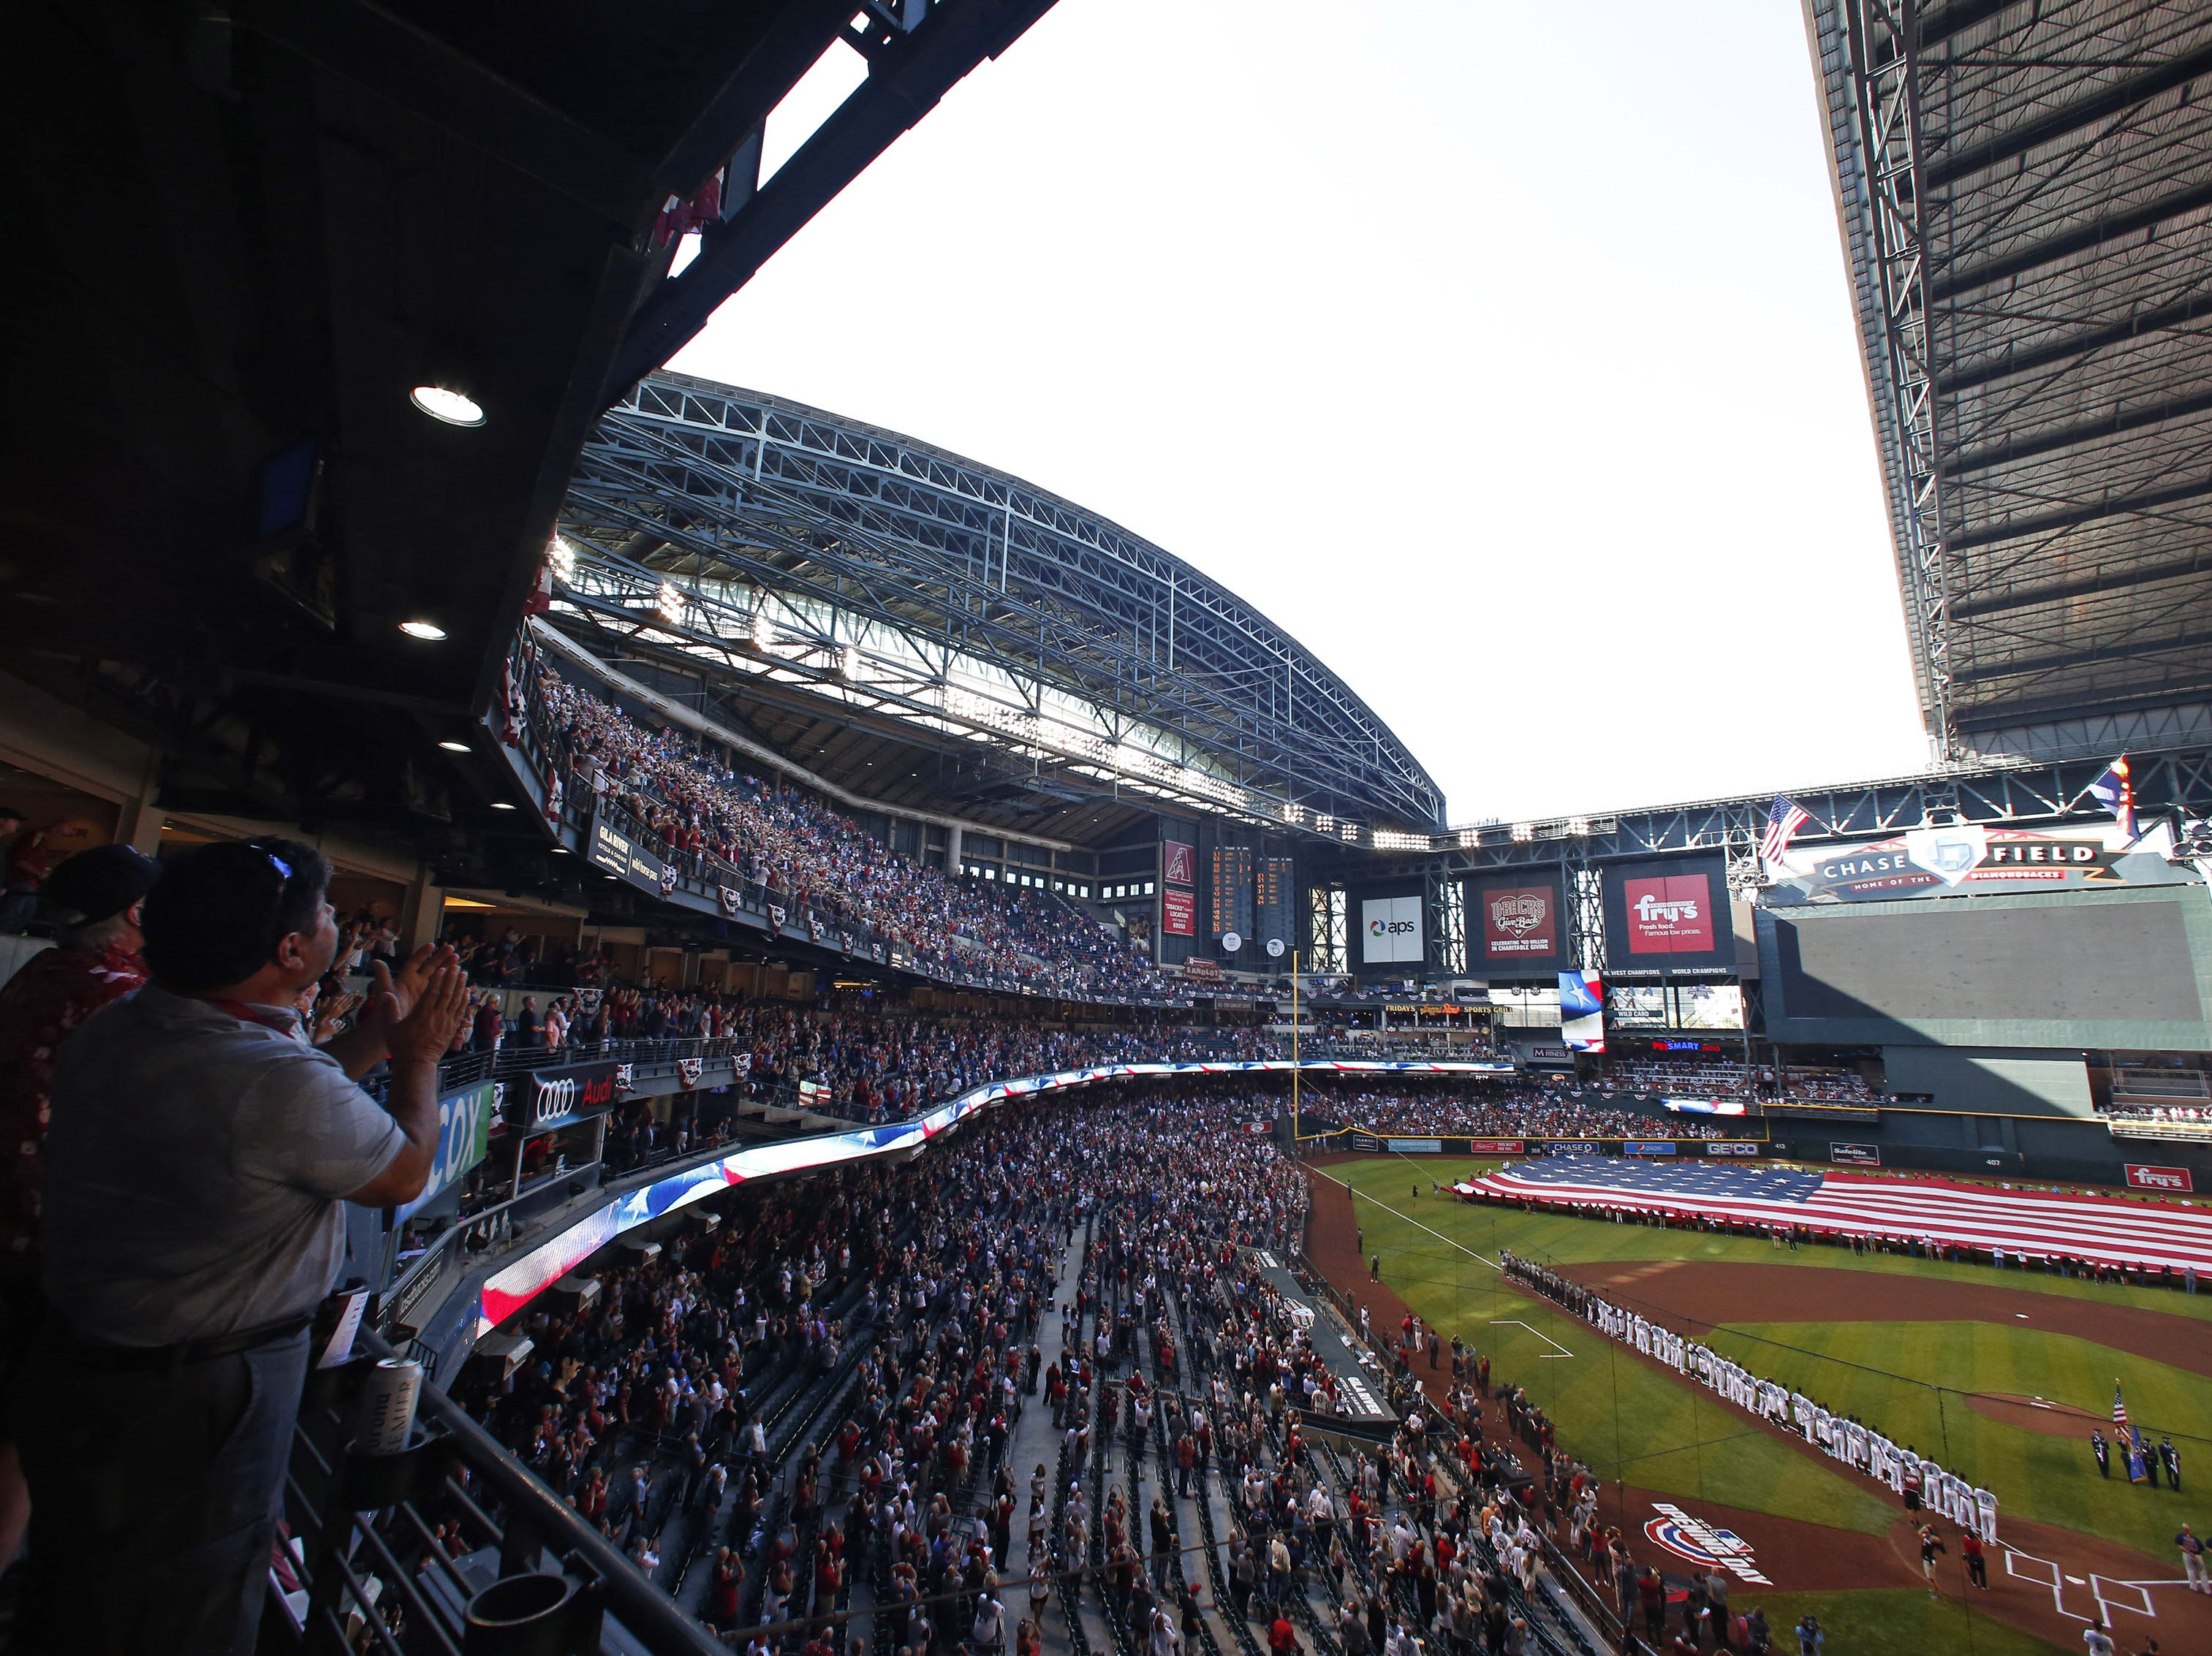 The roof only opened halfway during Opening Day at Chase Field in Phoenix on April 5.